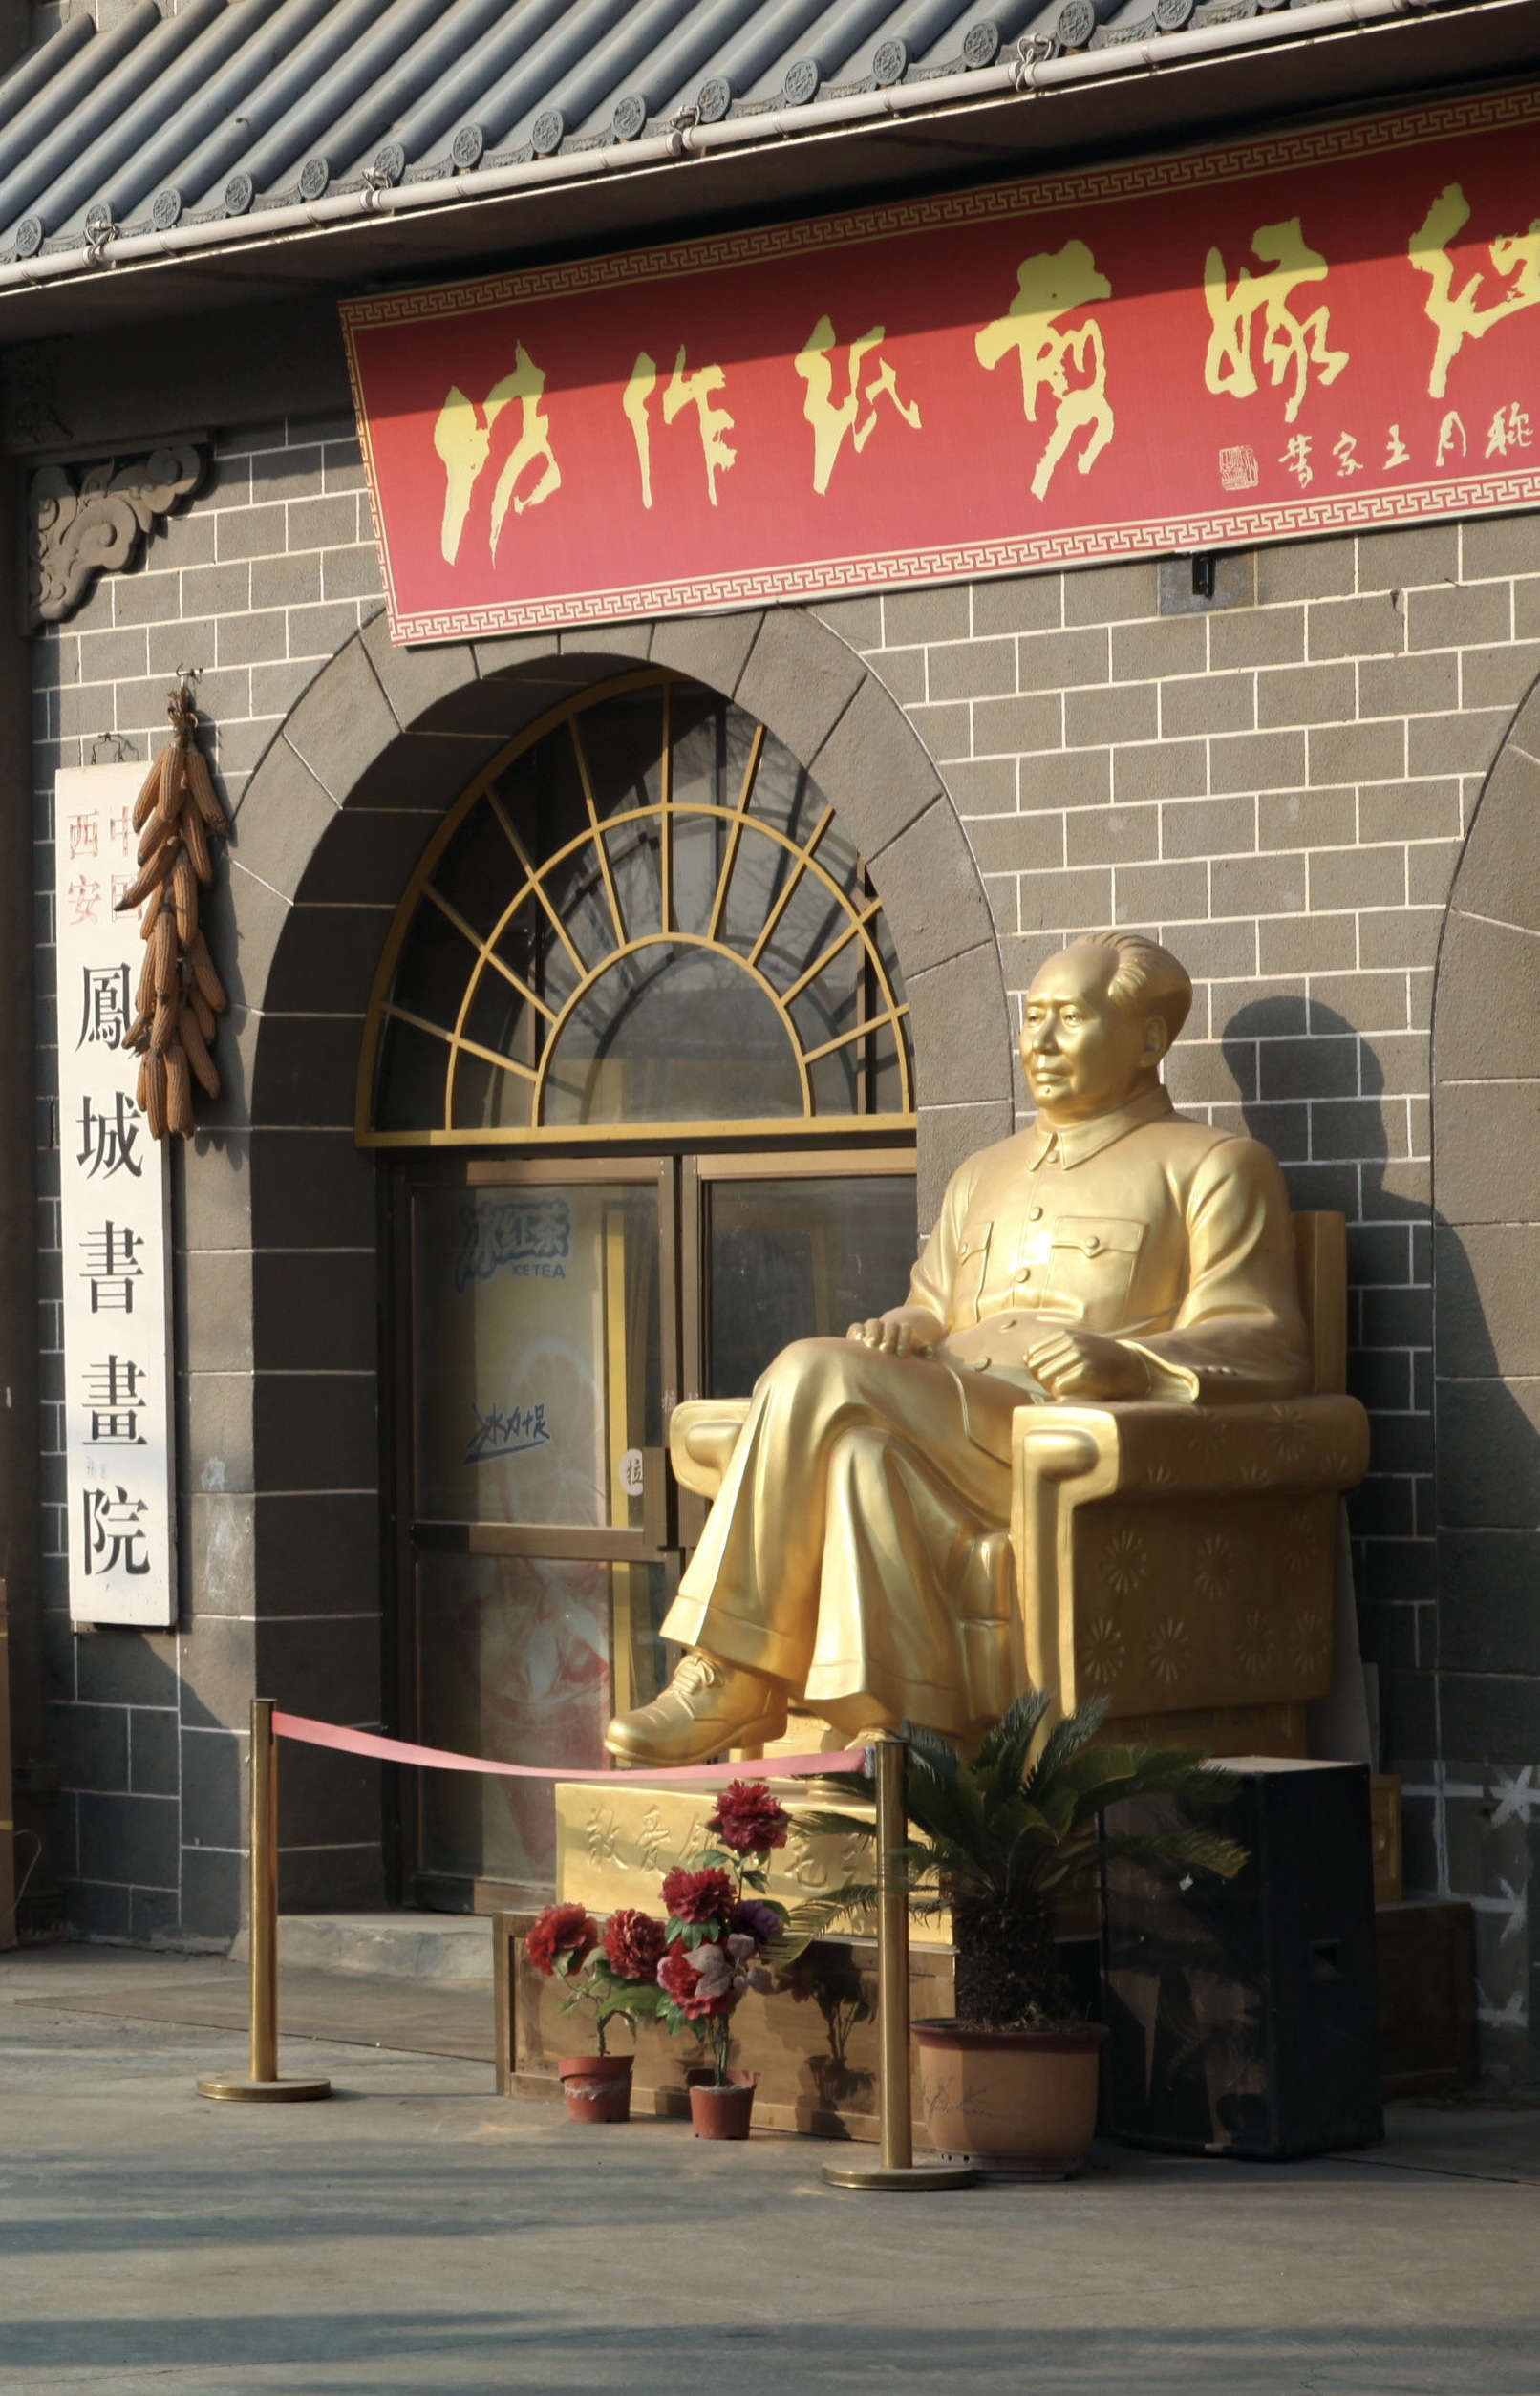 A statue of Mao Zedong on sale in Yan'an in 2015.  Photo EB.